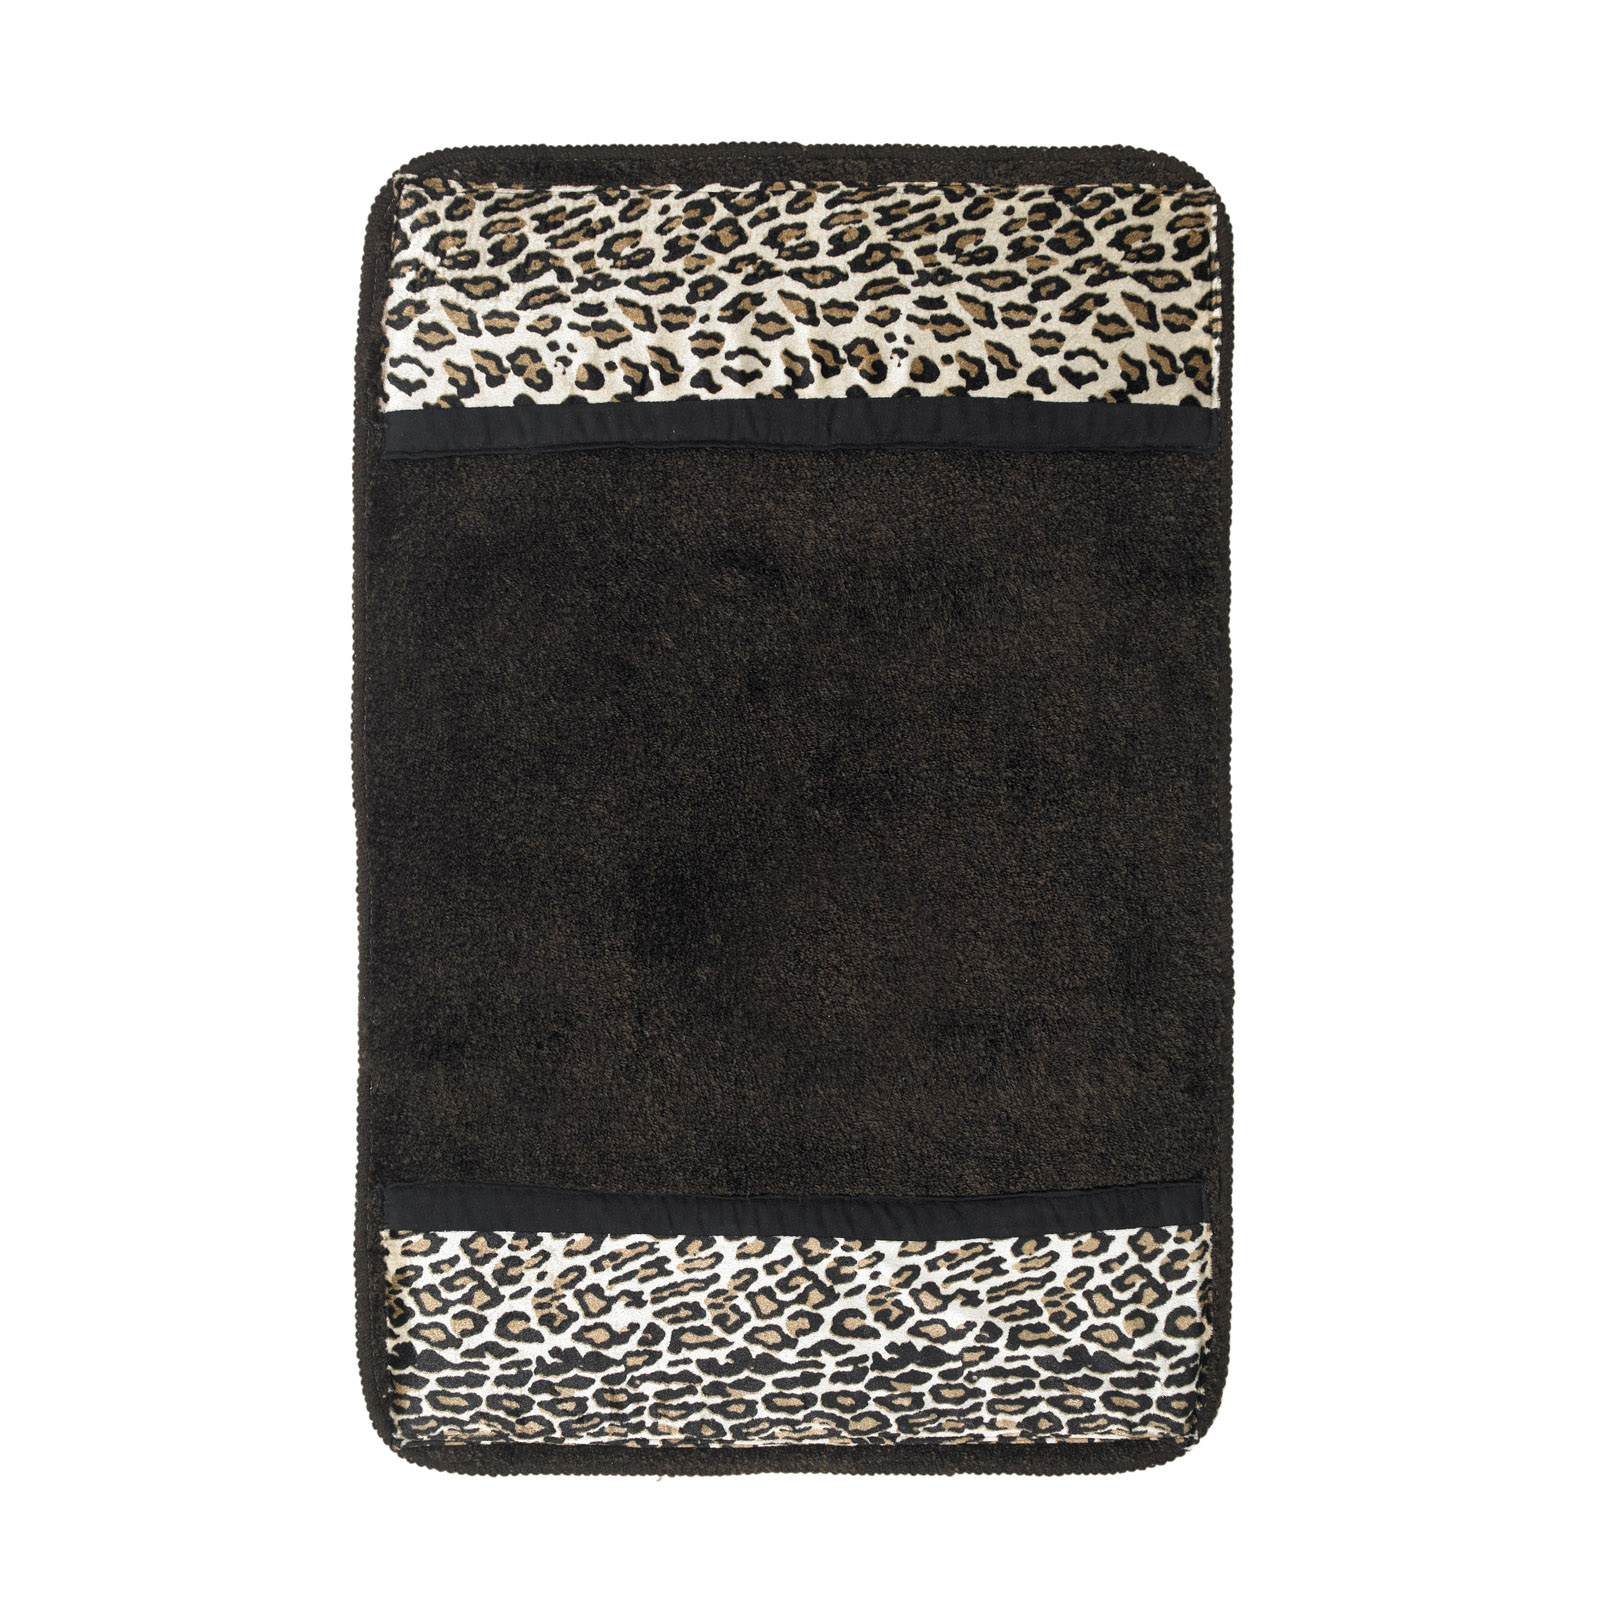 Gazelle Bath Rug, MULTI